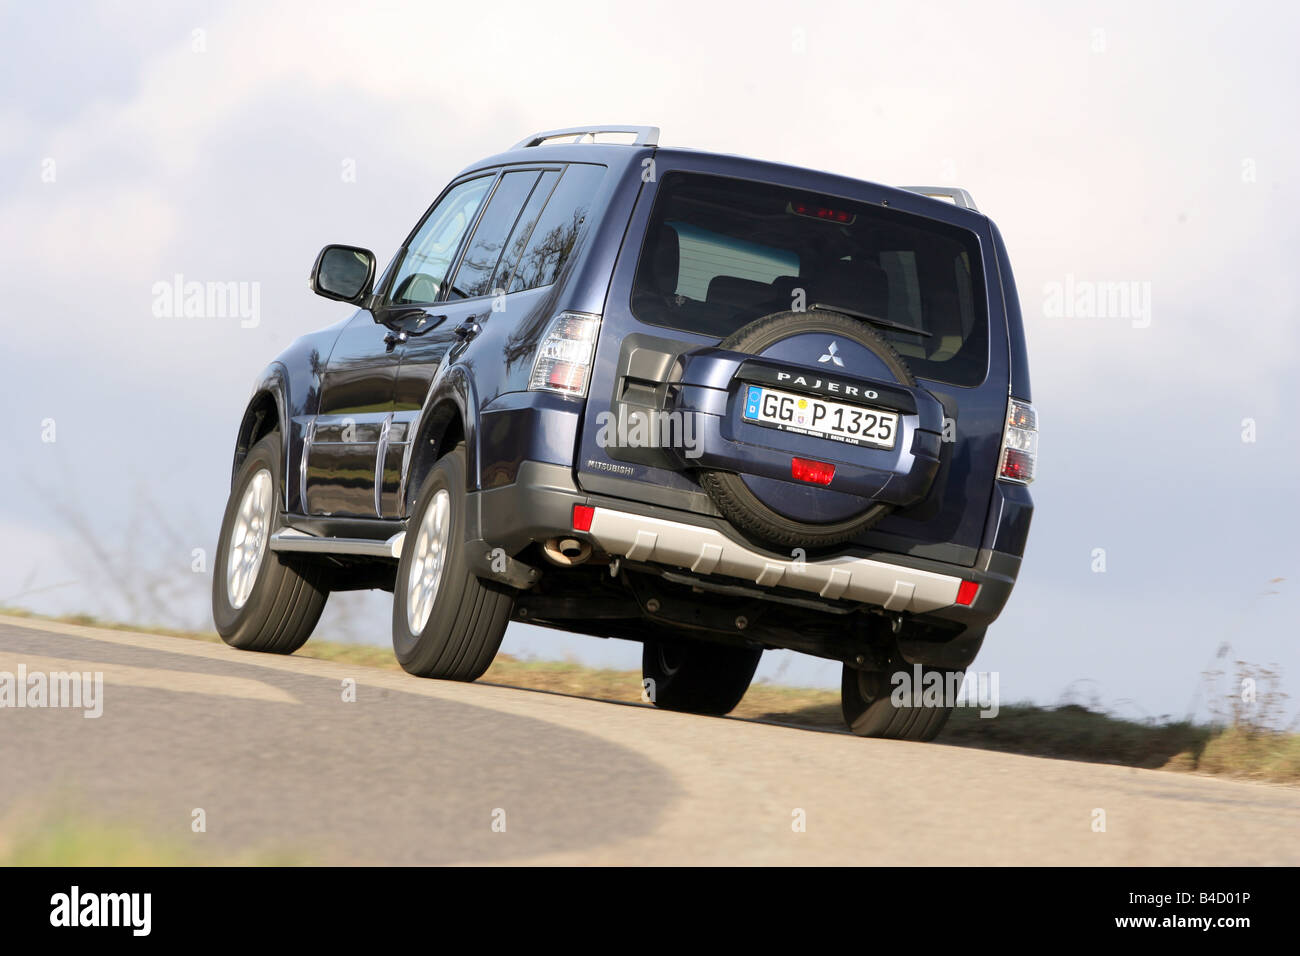 Mitsubishi Pajero 3,2 Instyle-Version, model year 2007-, dunkelblue moving, diagonal from the back, rear view, country - Stock Image